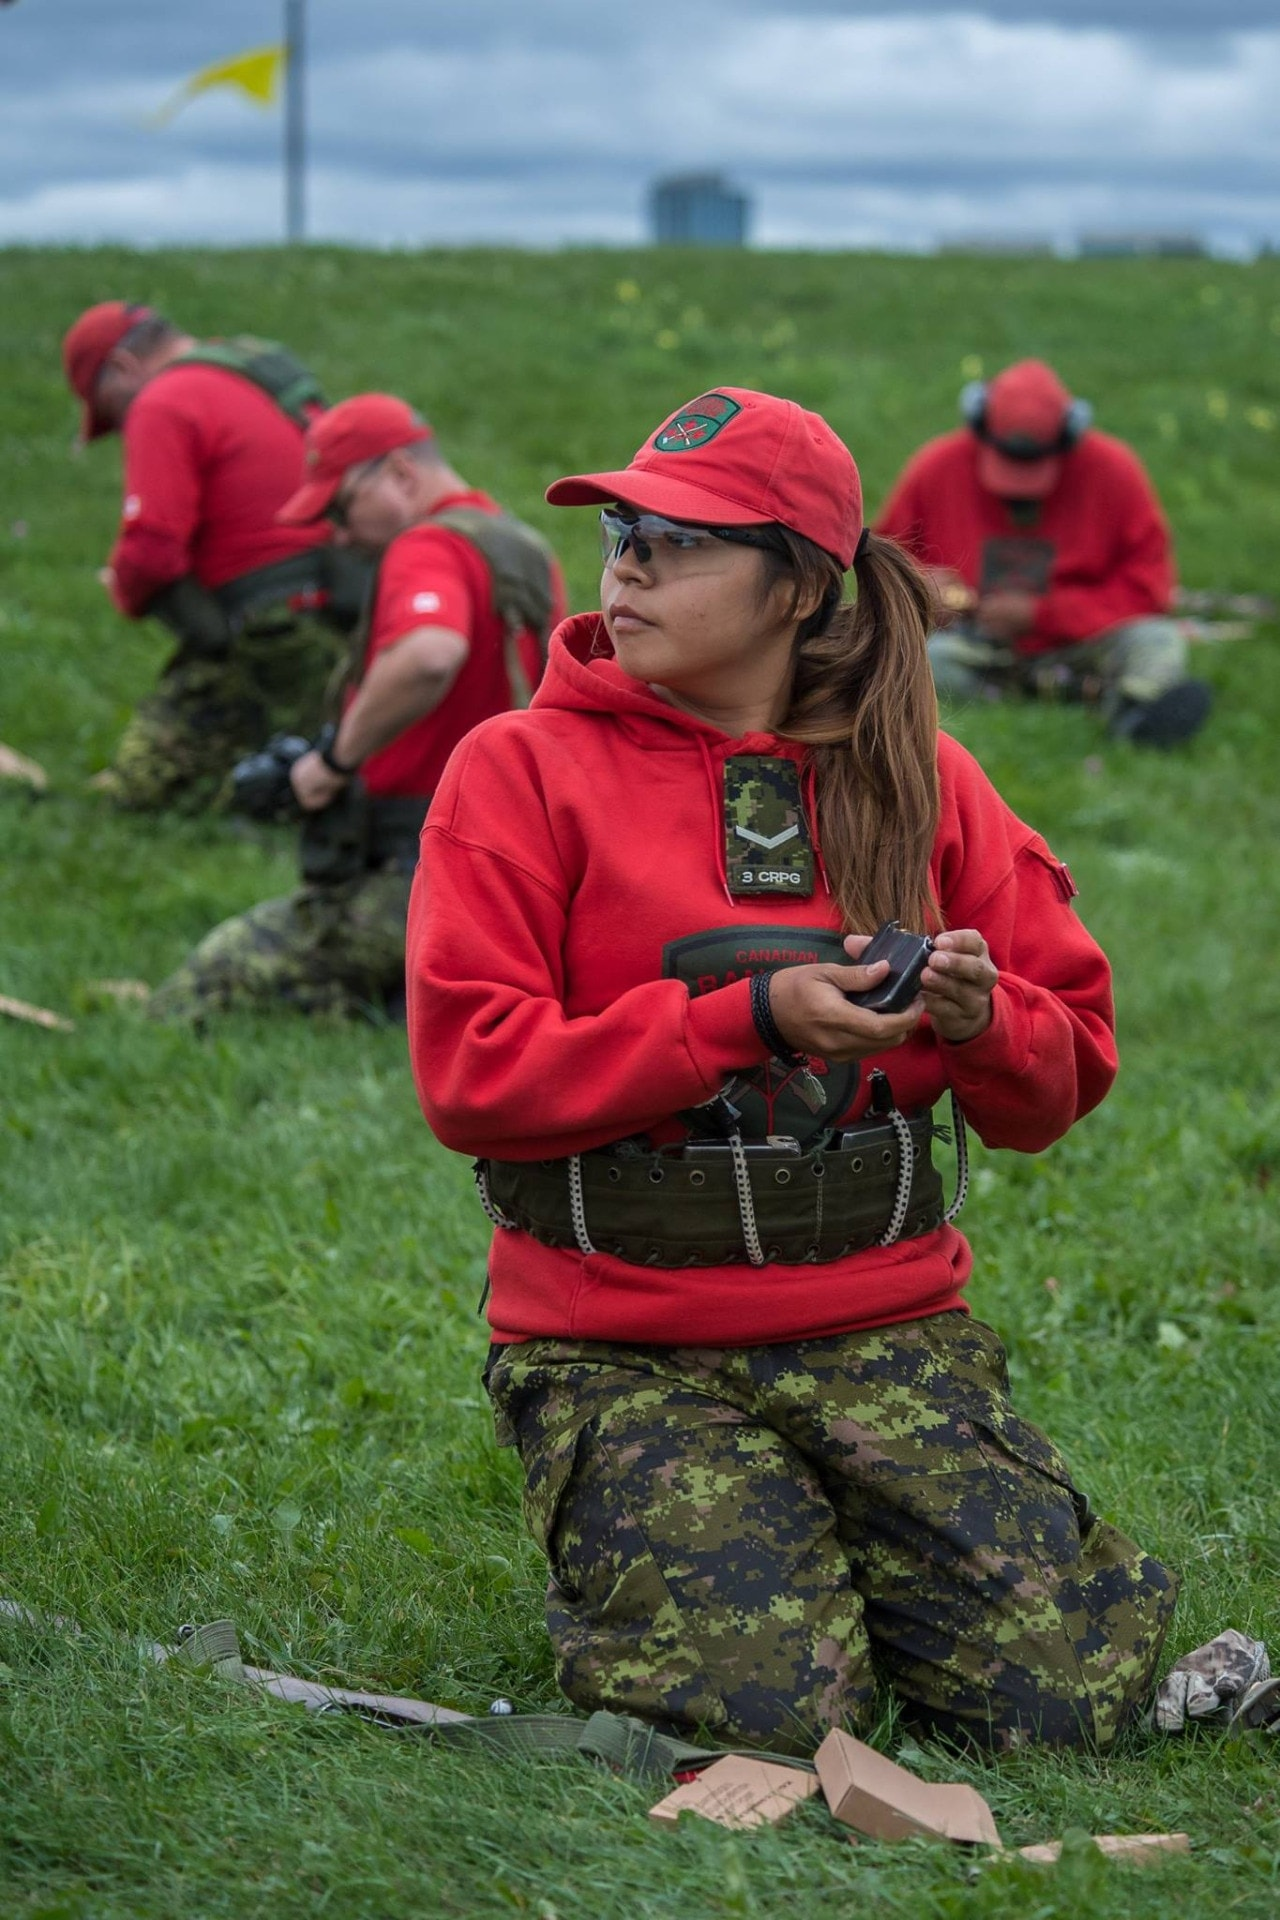 canadian-armed-forces-small-arms-concentration-rangers-smle-2016-2